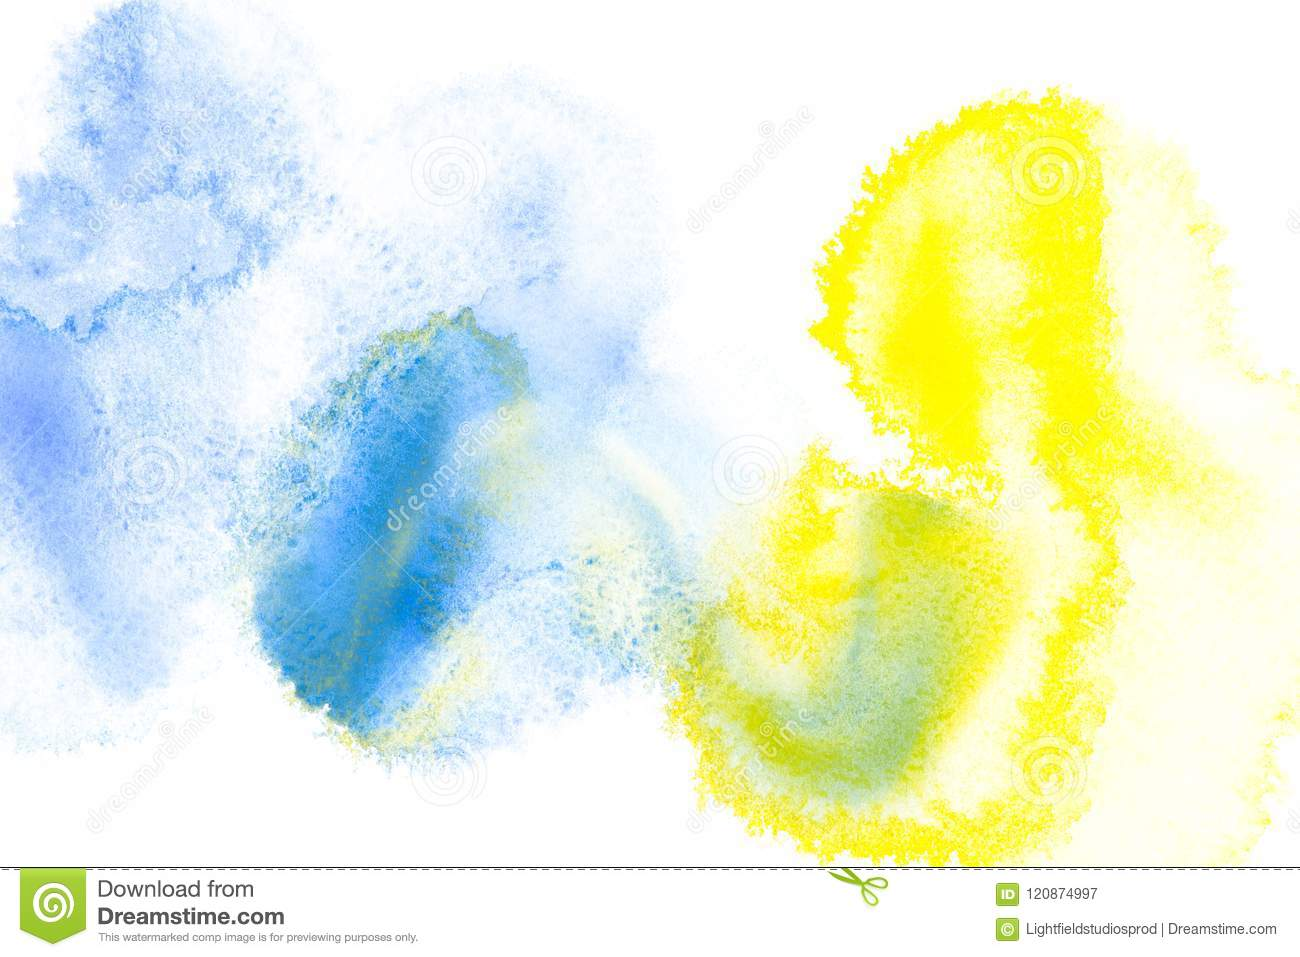 Abstract painting with bright blue and yellow paint blots